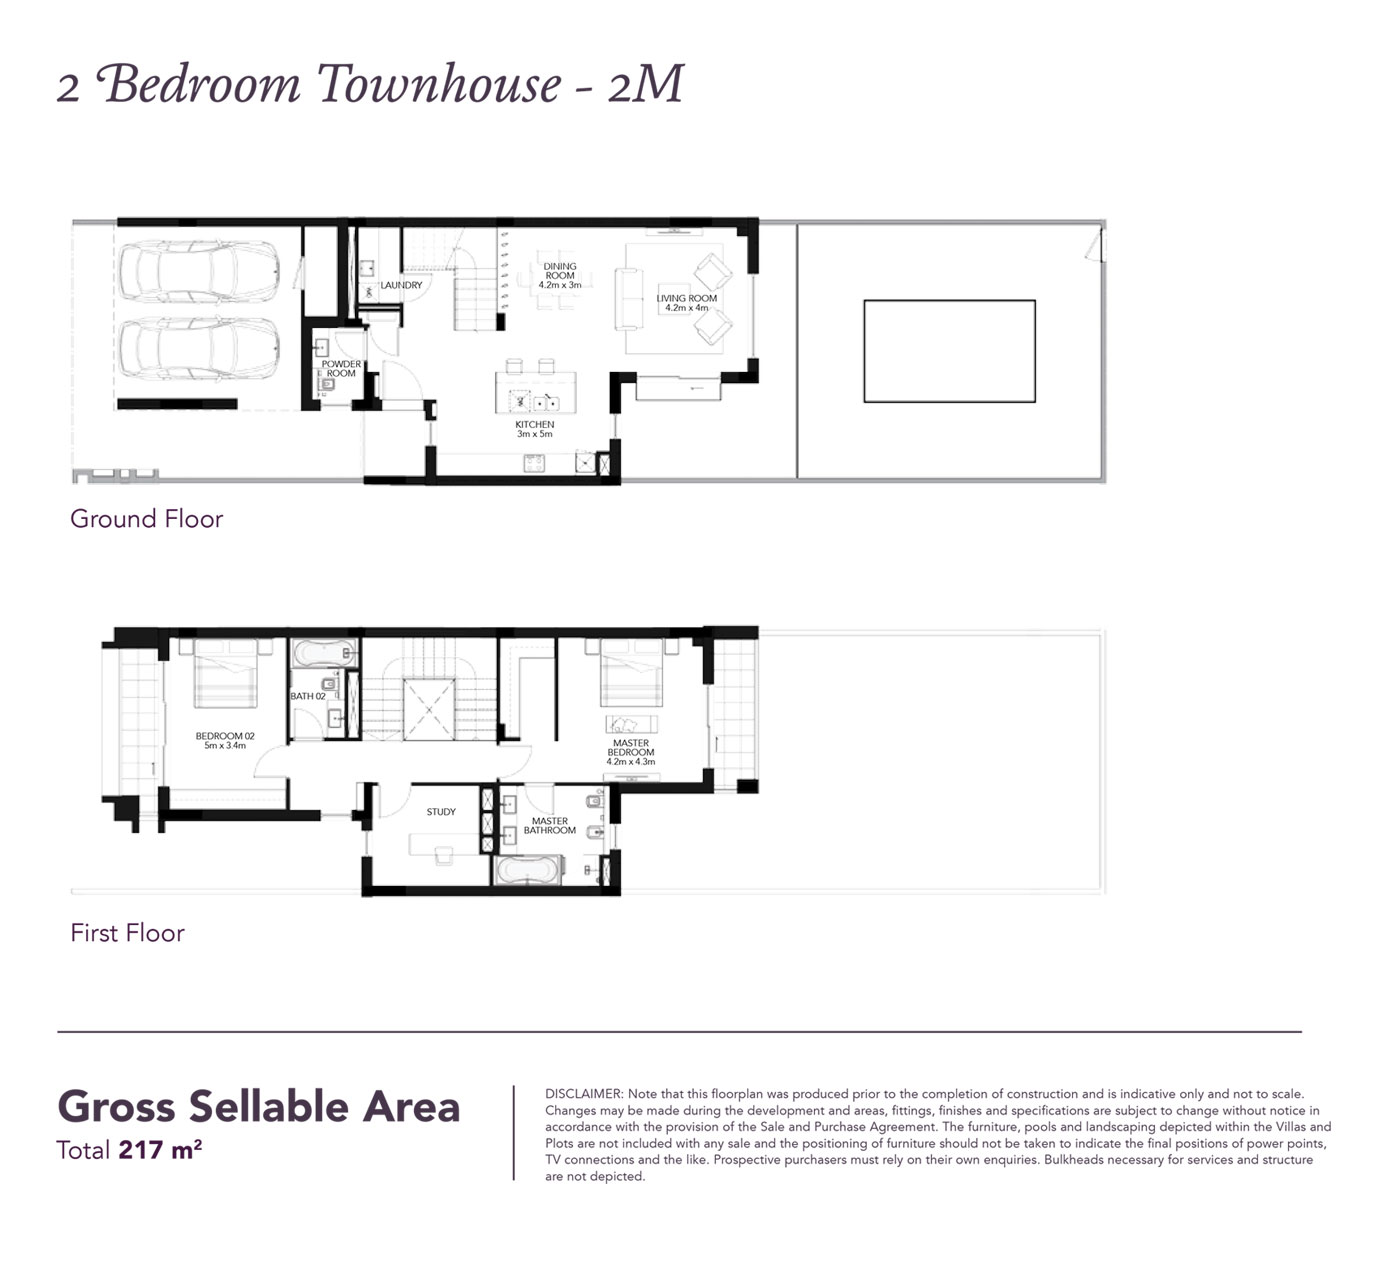 2 Beds Townhouse - Built up area 2,335 SqFt